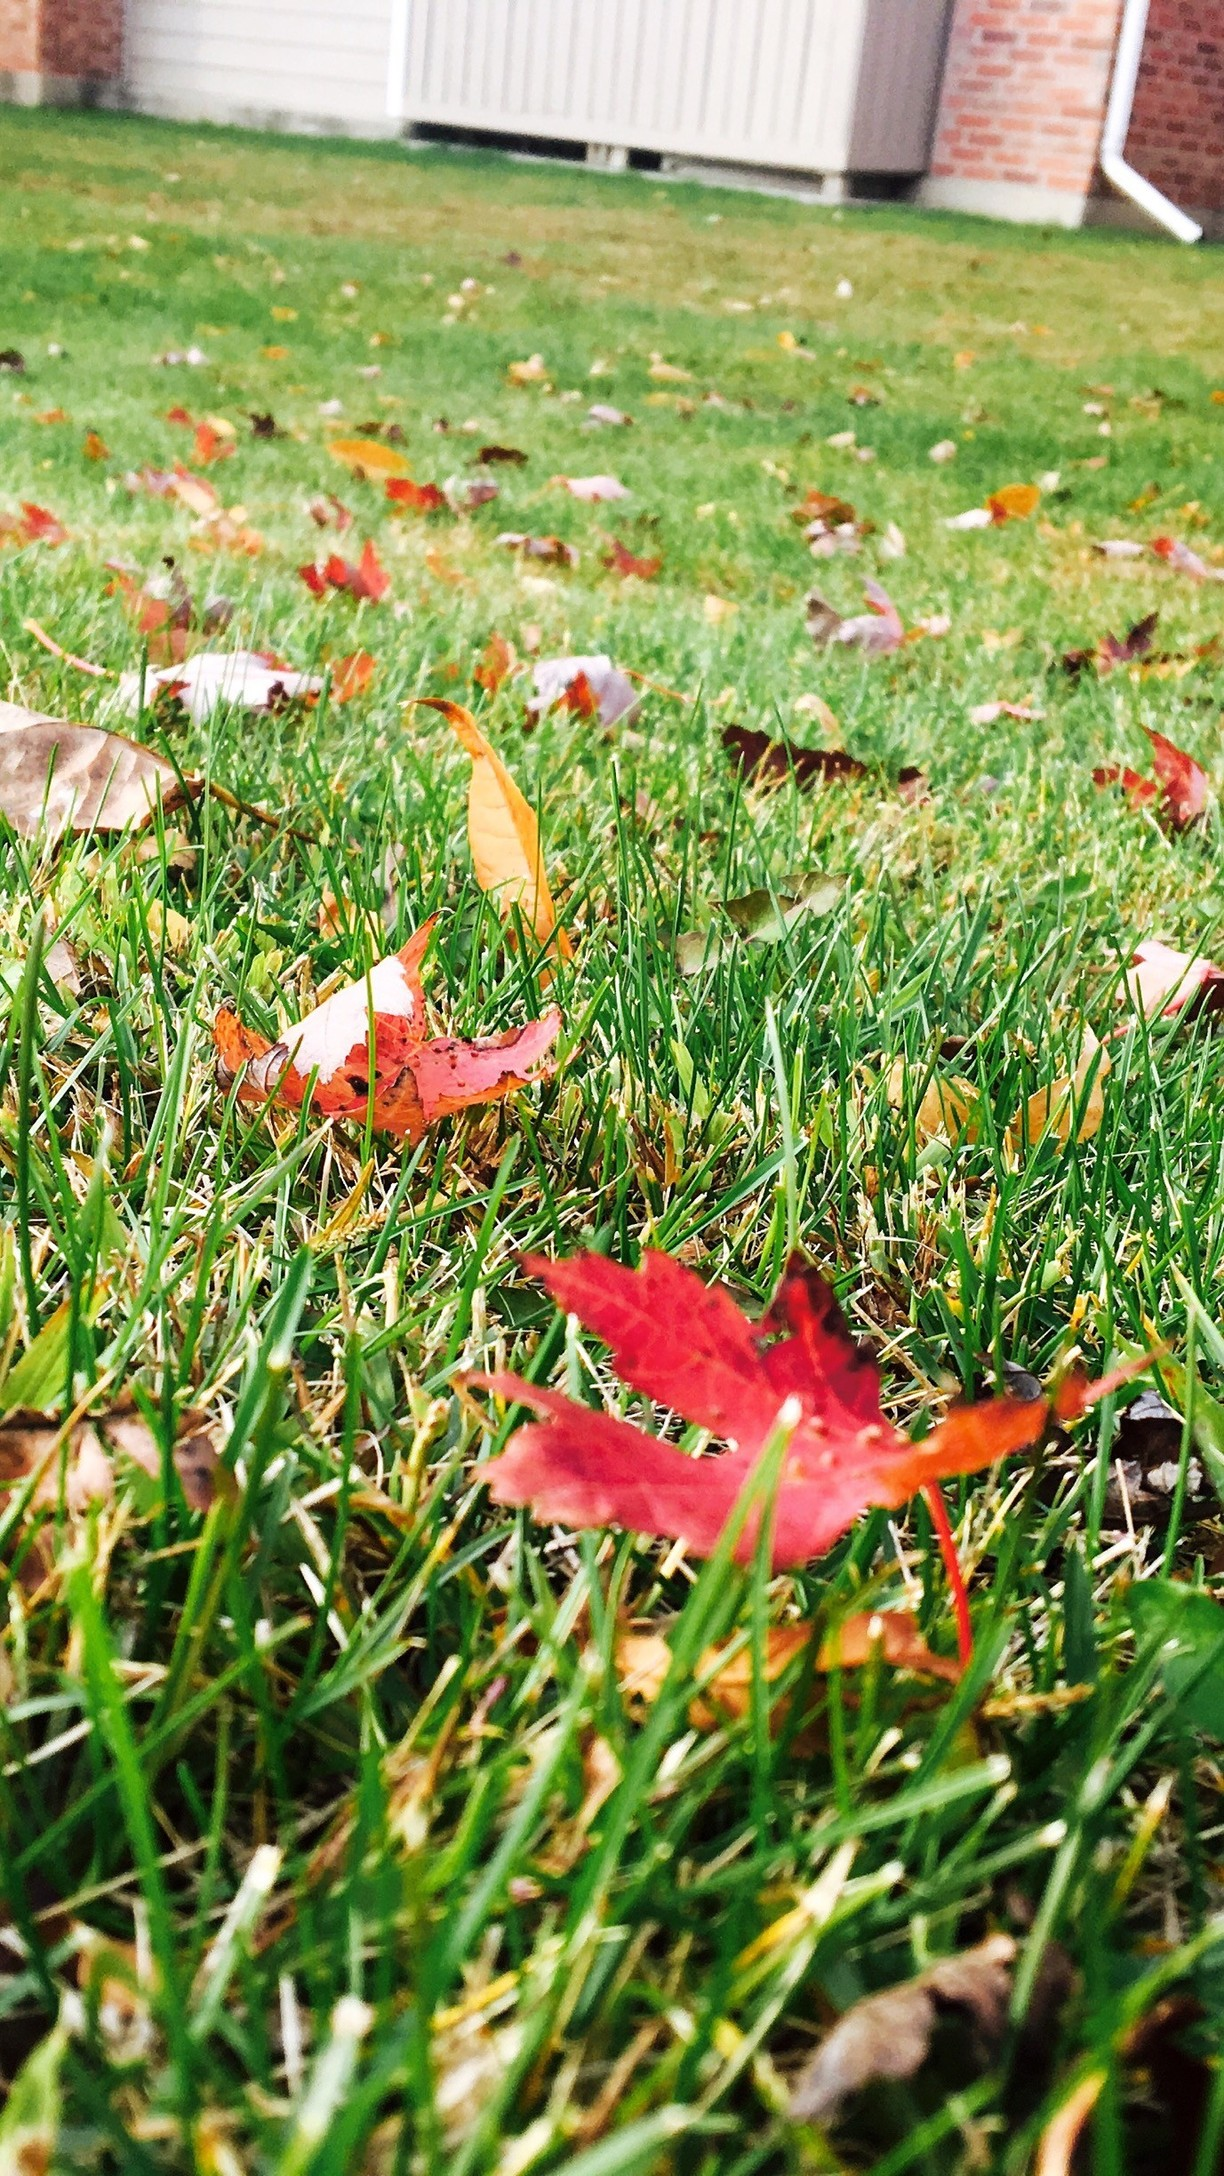 The Green at Chevy Chase, Lake County, Illinois - Colors of nature